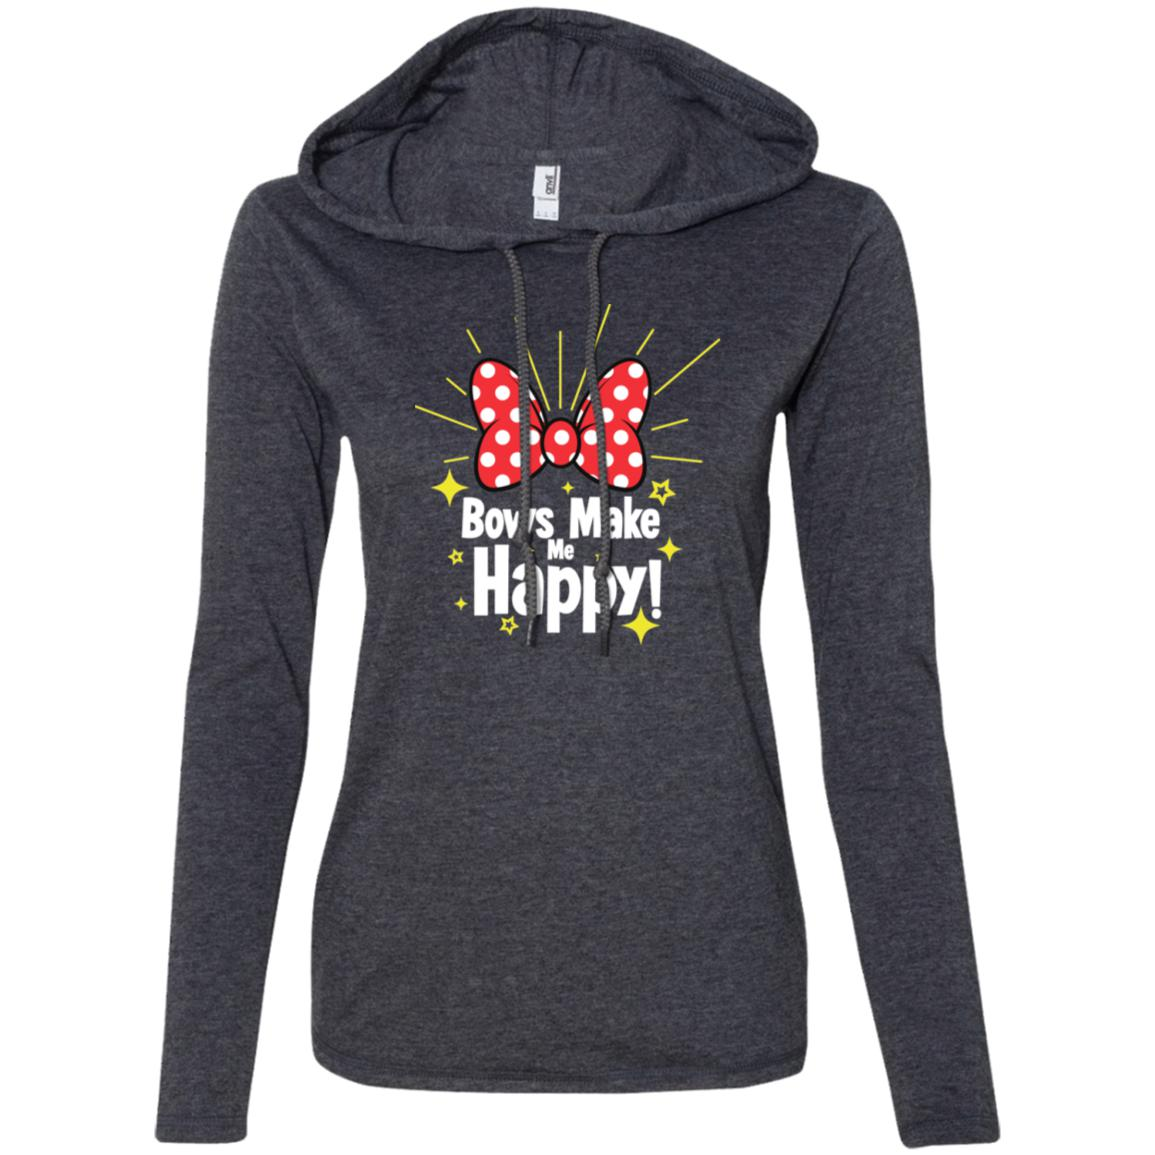 Bows Make Me Happy - Anvil Ladies' LS T-Shirt Hoodie